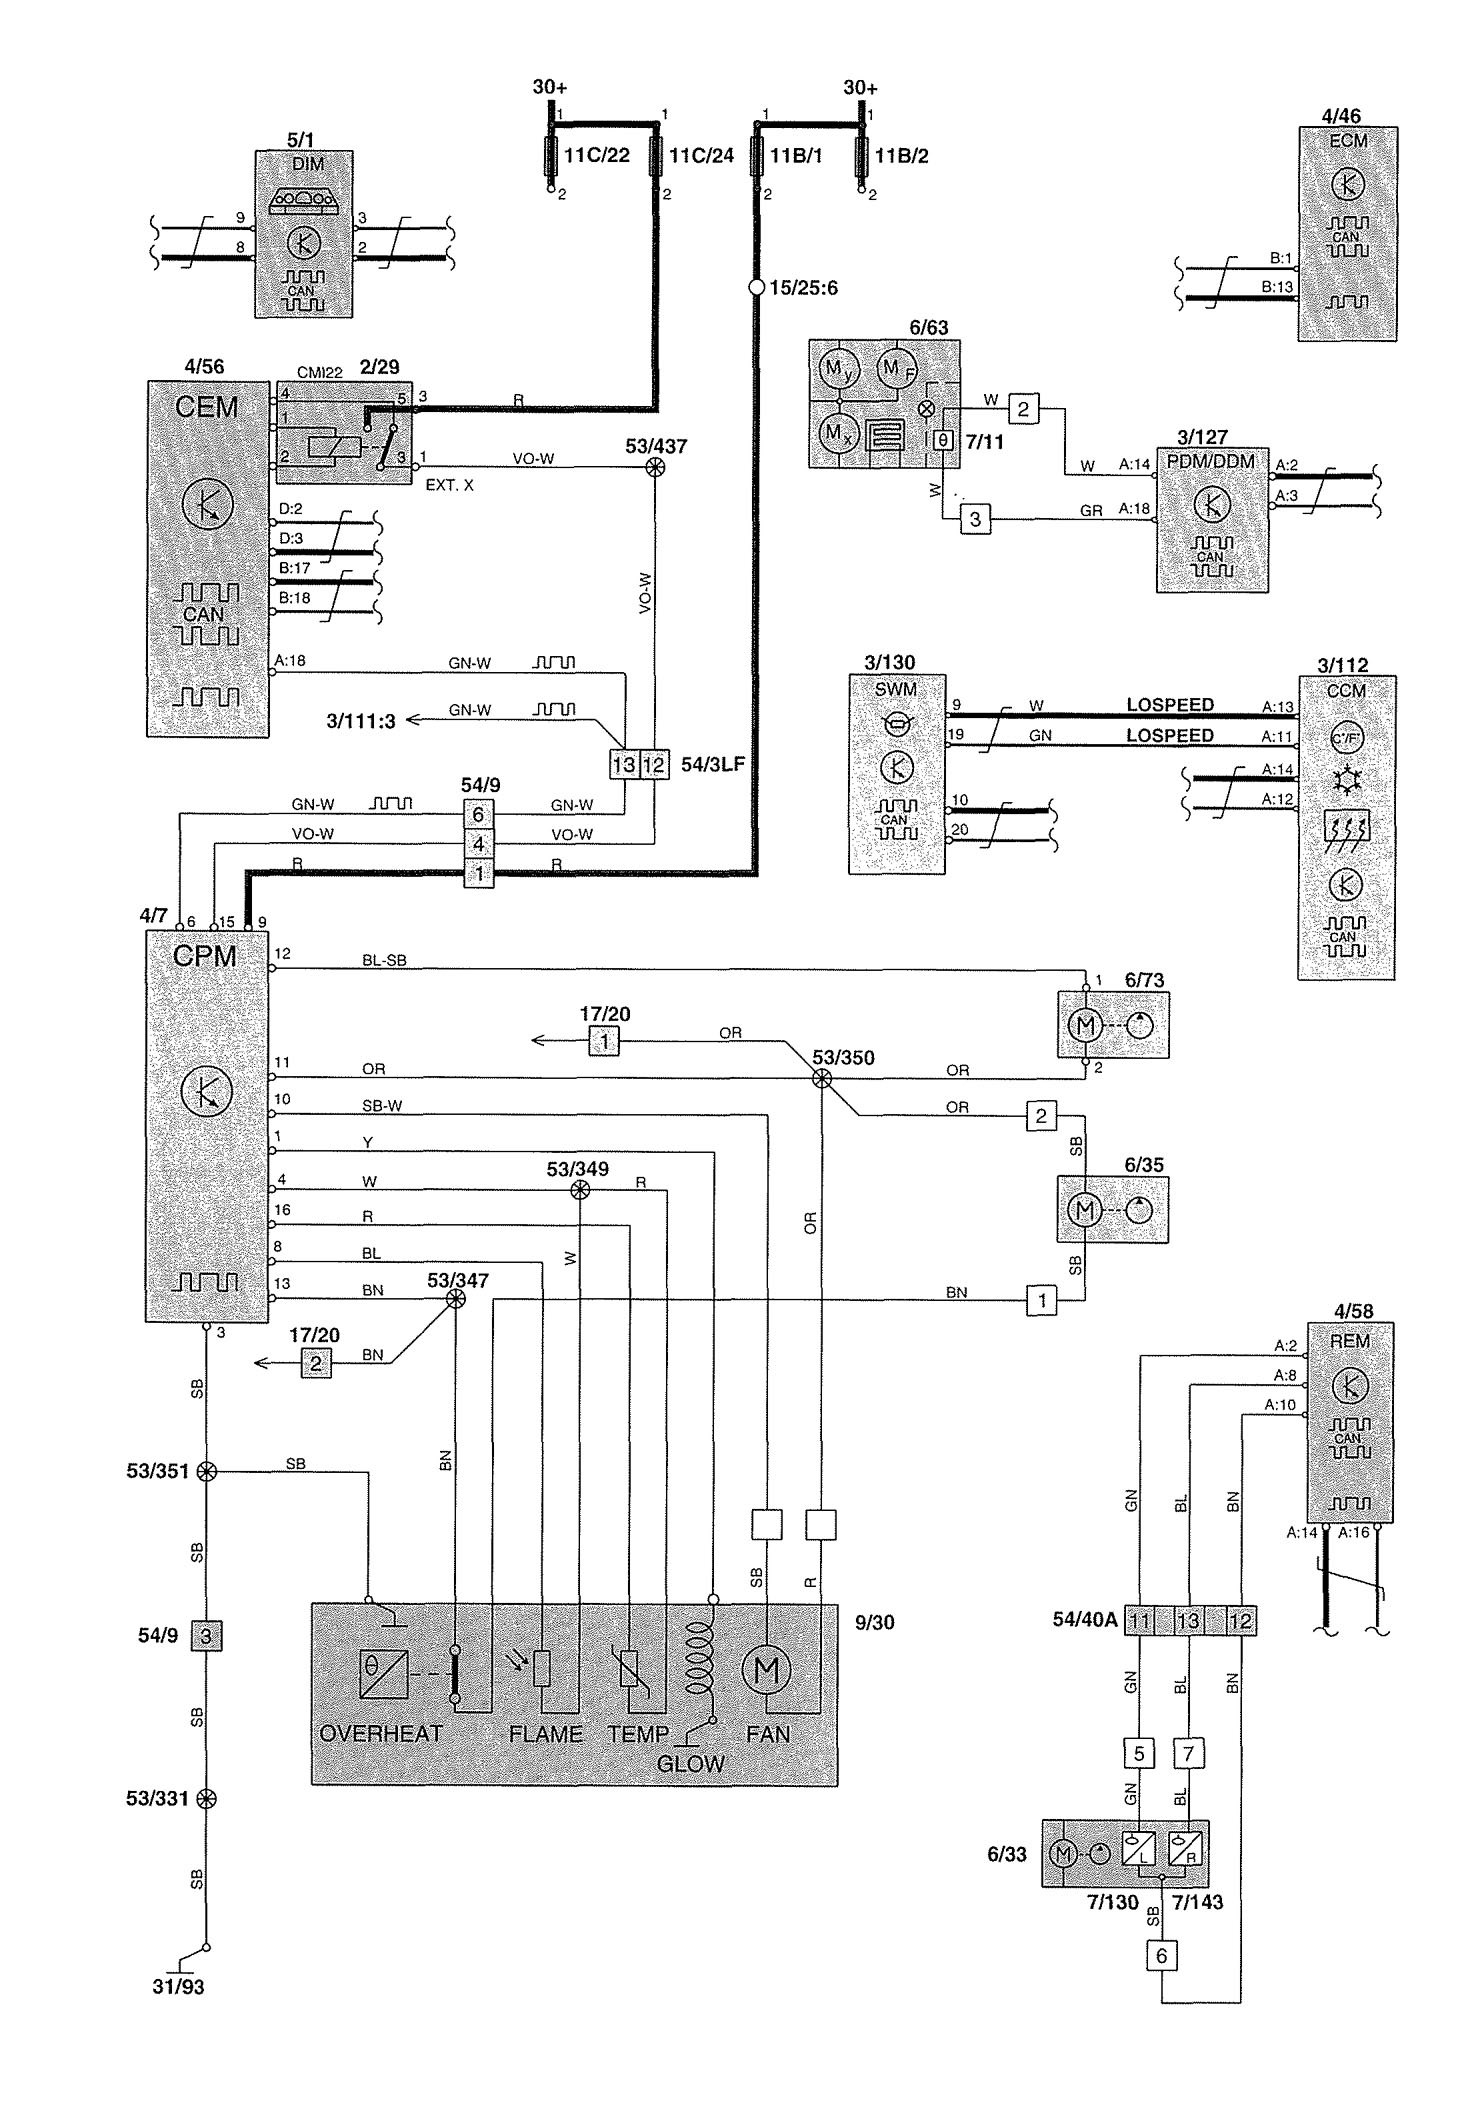 Volvo V70 Cem Wiring Diagram $ Apktodownload.com